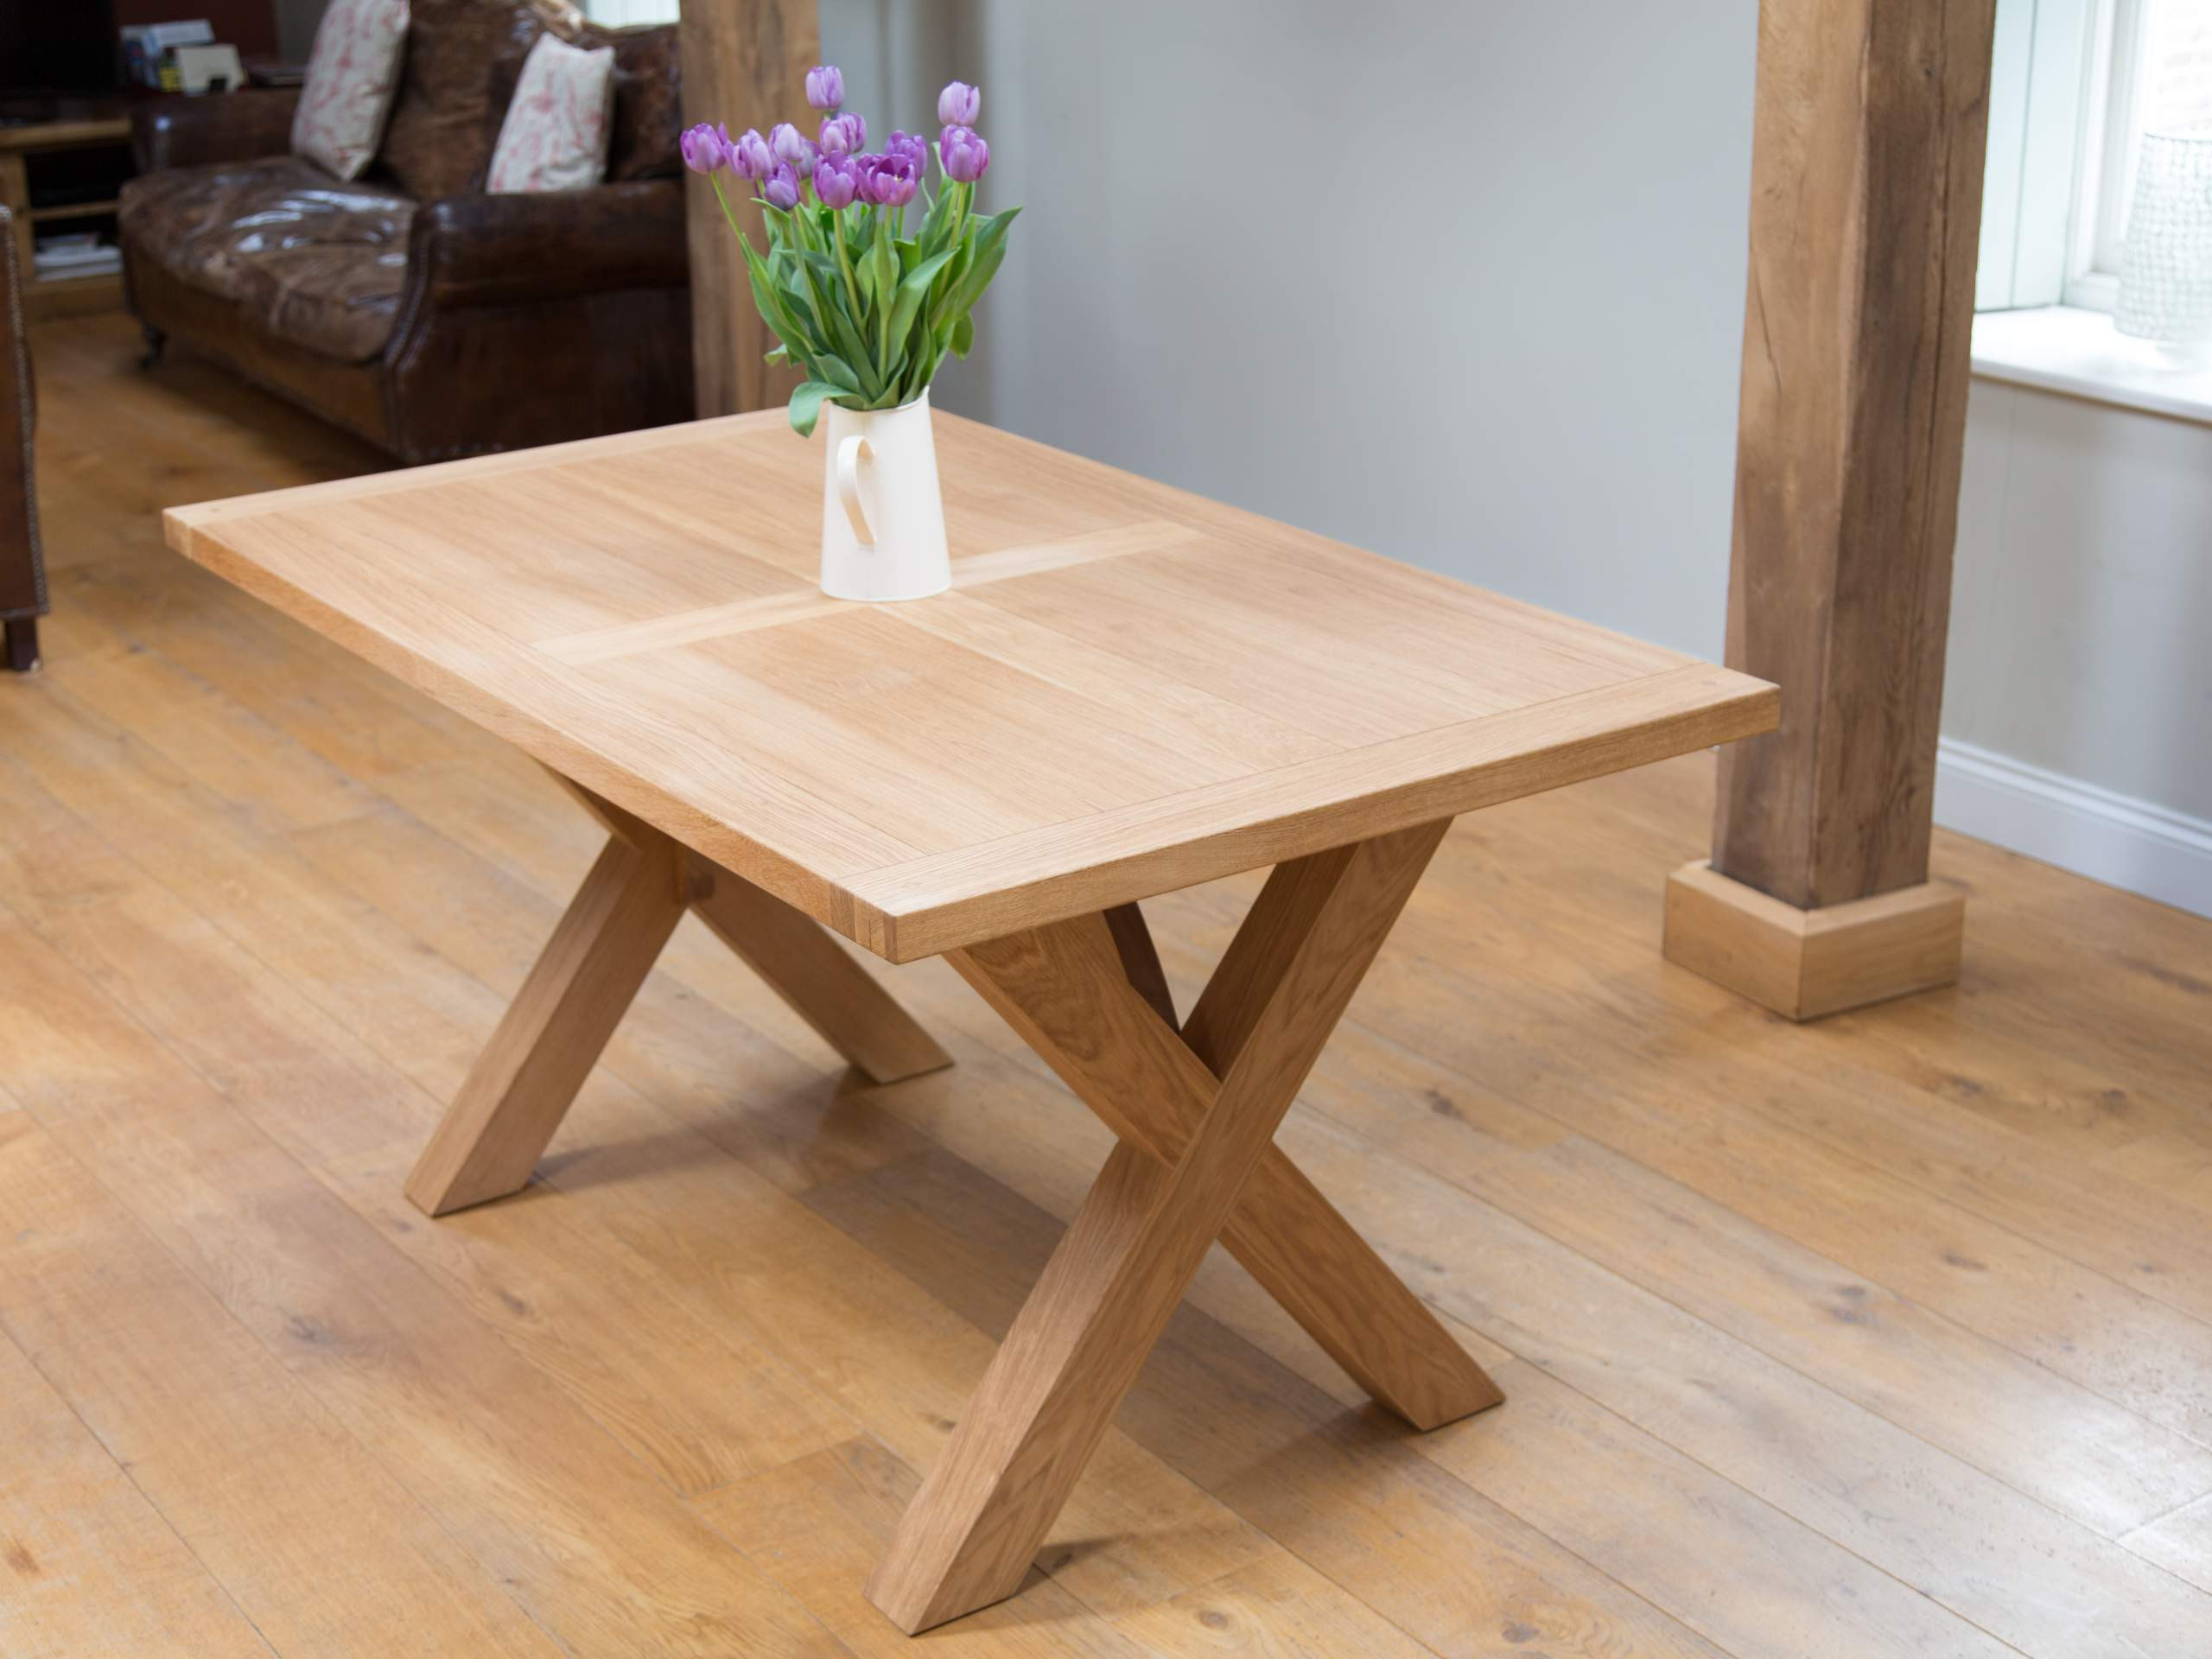 Best ideas about Dining Room Table Legs . Save or Pin rectangle brown wooden table with crossed legs placed on Now.